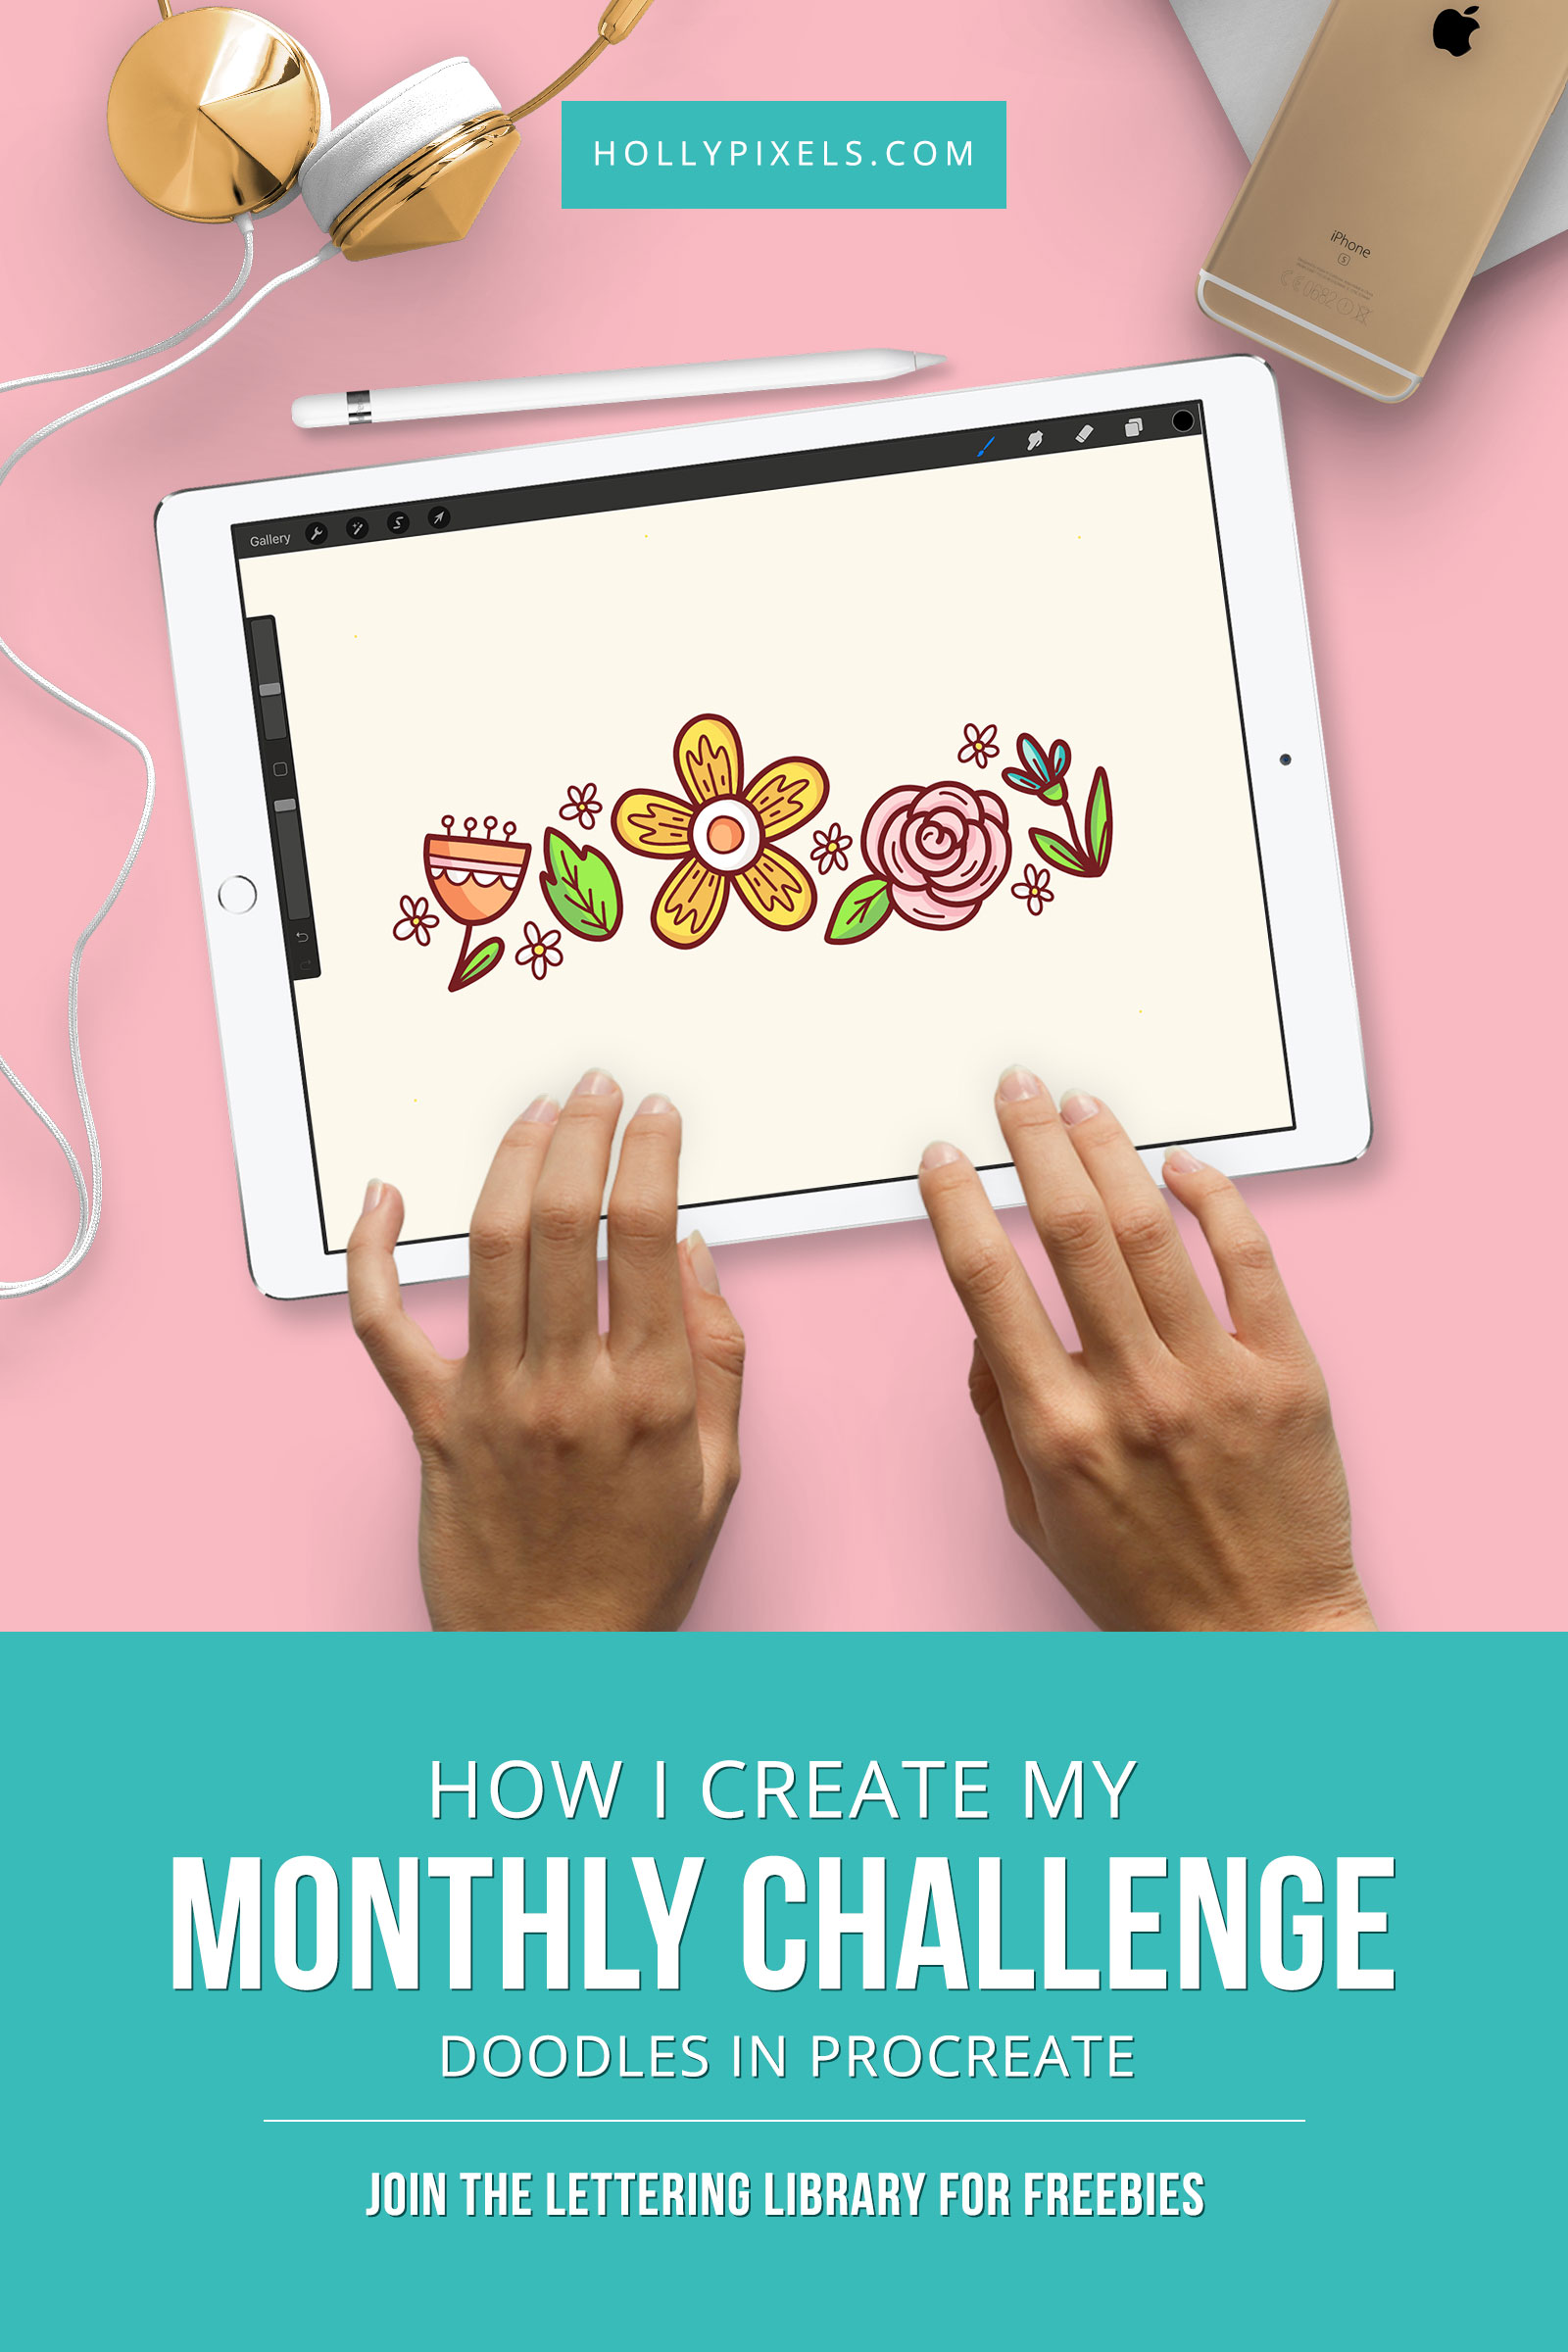 I thought I'd take you on the journey of drawing in Procreate and how I set up my monthly challenge doodles background for my #hollypixels Lettering & Drawing Challenge on Instagram - Follow me at @hollypixels on Instagram to join in!